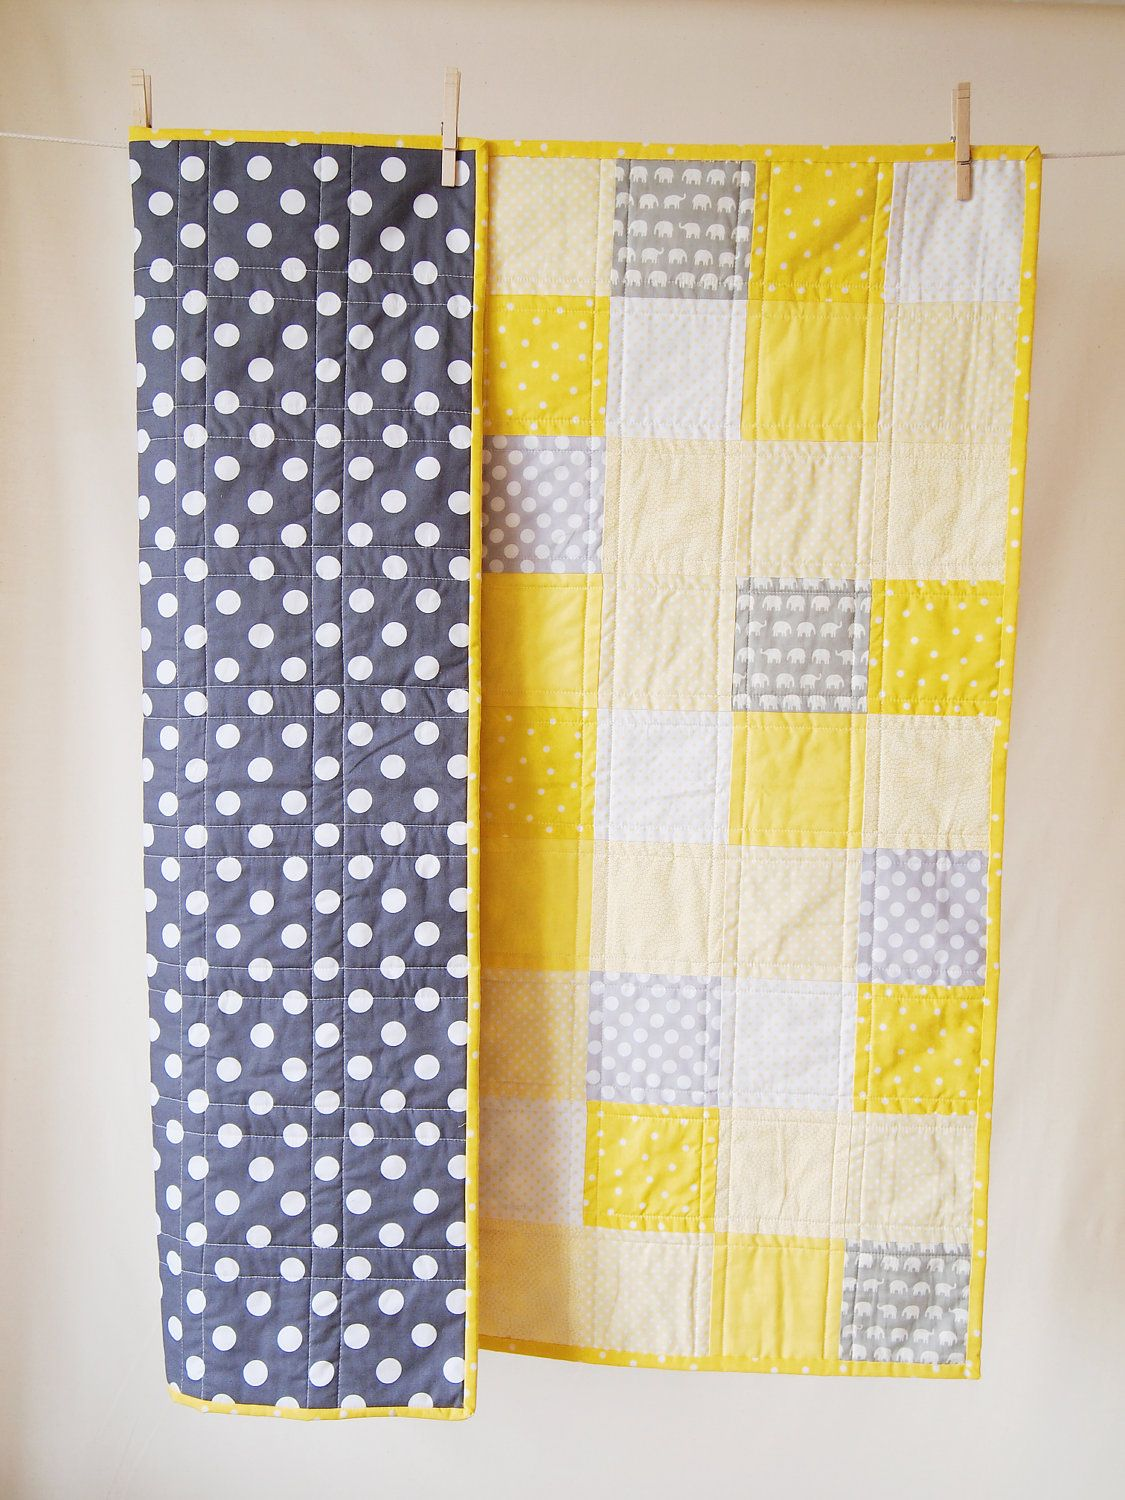 BABY QUILT Modern Bright Yellow and Grey Baby Quilt | Quilt modern ... : bright yellow quilt - Adamdwight.com